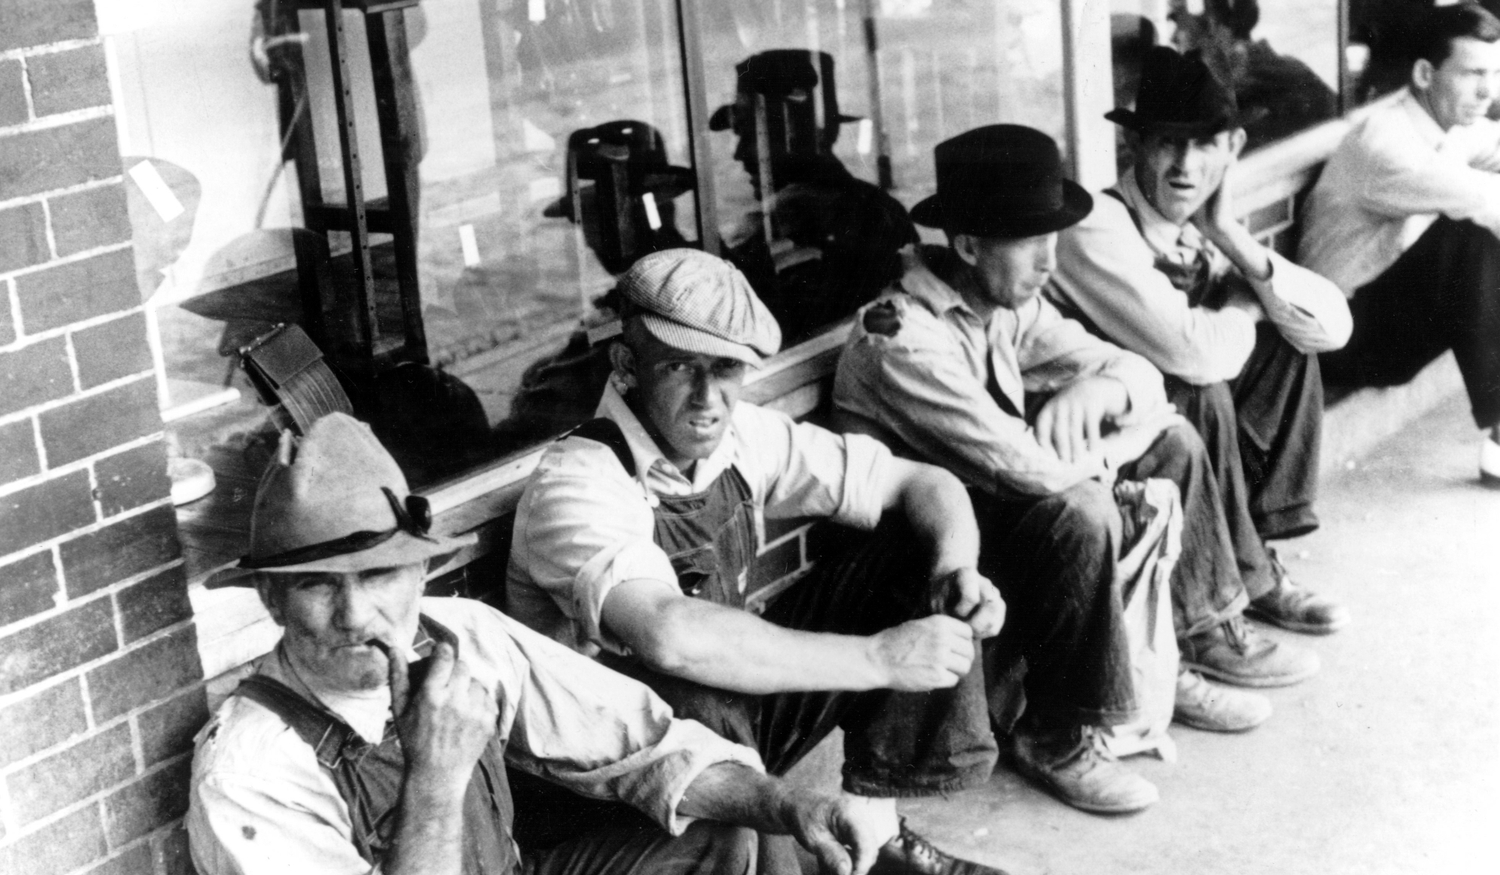 group of men sitting in front of store in the 1930s